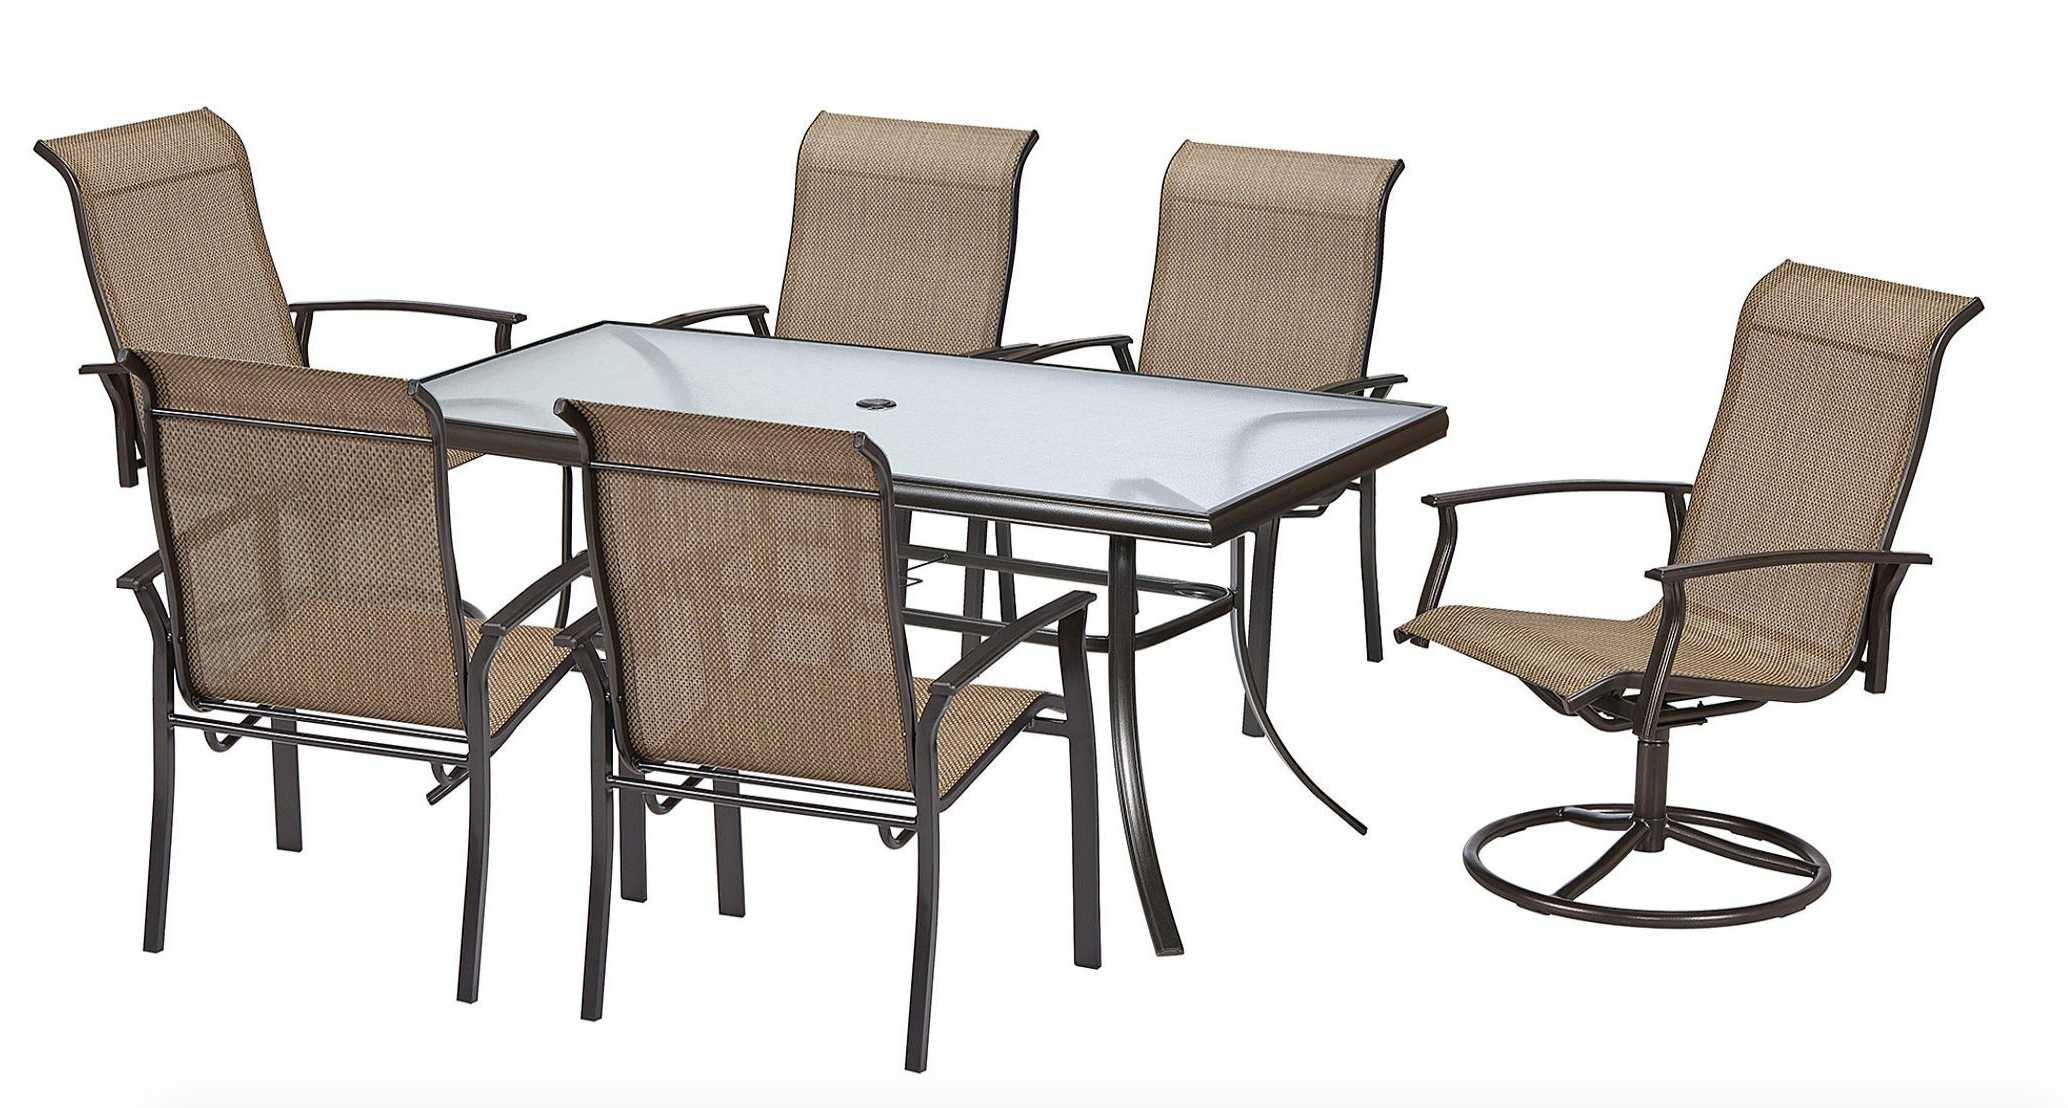 Fashionable Delfina 7 Piece Dining Sets Intended For Cheap Ikea Dining Sets, Find Ikea Dining Sets Deals On Line At (View 4 of 25)